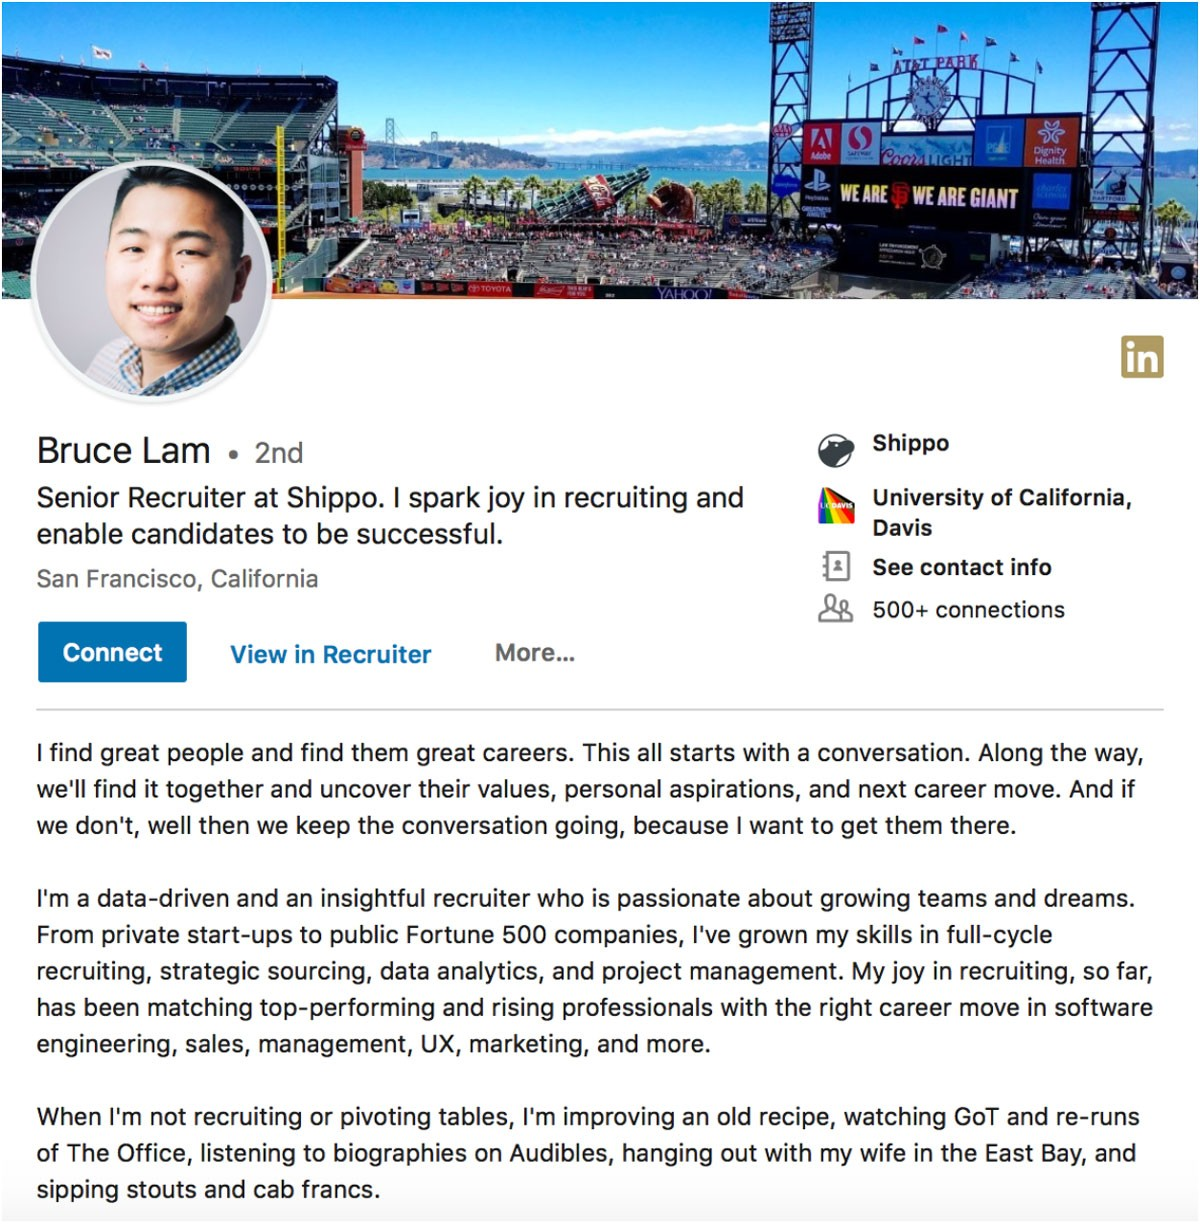 Bruce Lam's Summary: I find great people and find them great careers. This all starts with a conversation. Along the way, we'll find it together and uncover their values, personal aspirations, and next career move. And if we don't, well then we keep the conversation going, because I want to get them there.  I'm a data-driven and insightful recruiter who is passionate about growing teams and dreams. From private start-ups to public Fortune 500 companies, I've grown my skills in full-cycle recruiting, strategic sourcing, data analytics, and project management. My joy in recruiting, so far, has been matching top-performing and rising professionals with the right career move in software engineering, sales, management, UX, marketing, and more.  When I'm not recruiting or pivoting tables, I'm improving an old recipe, watching GoT and re-runs of The Office, listening to biographies on Audibles, hanging out with my wife in the East Bay, and sipping stouts and cab francs.